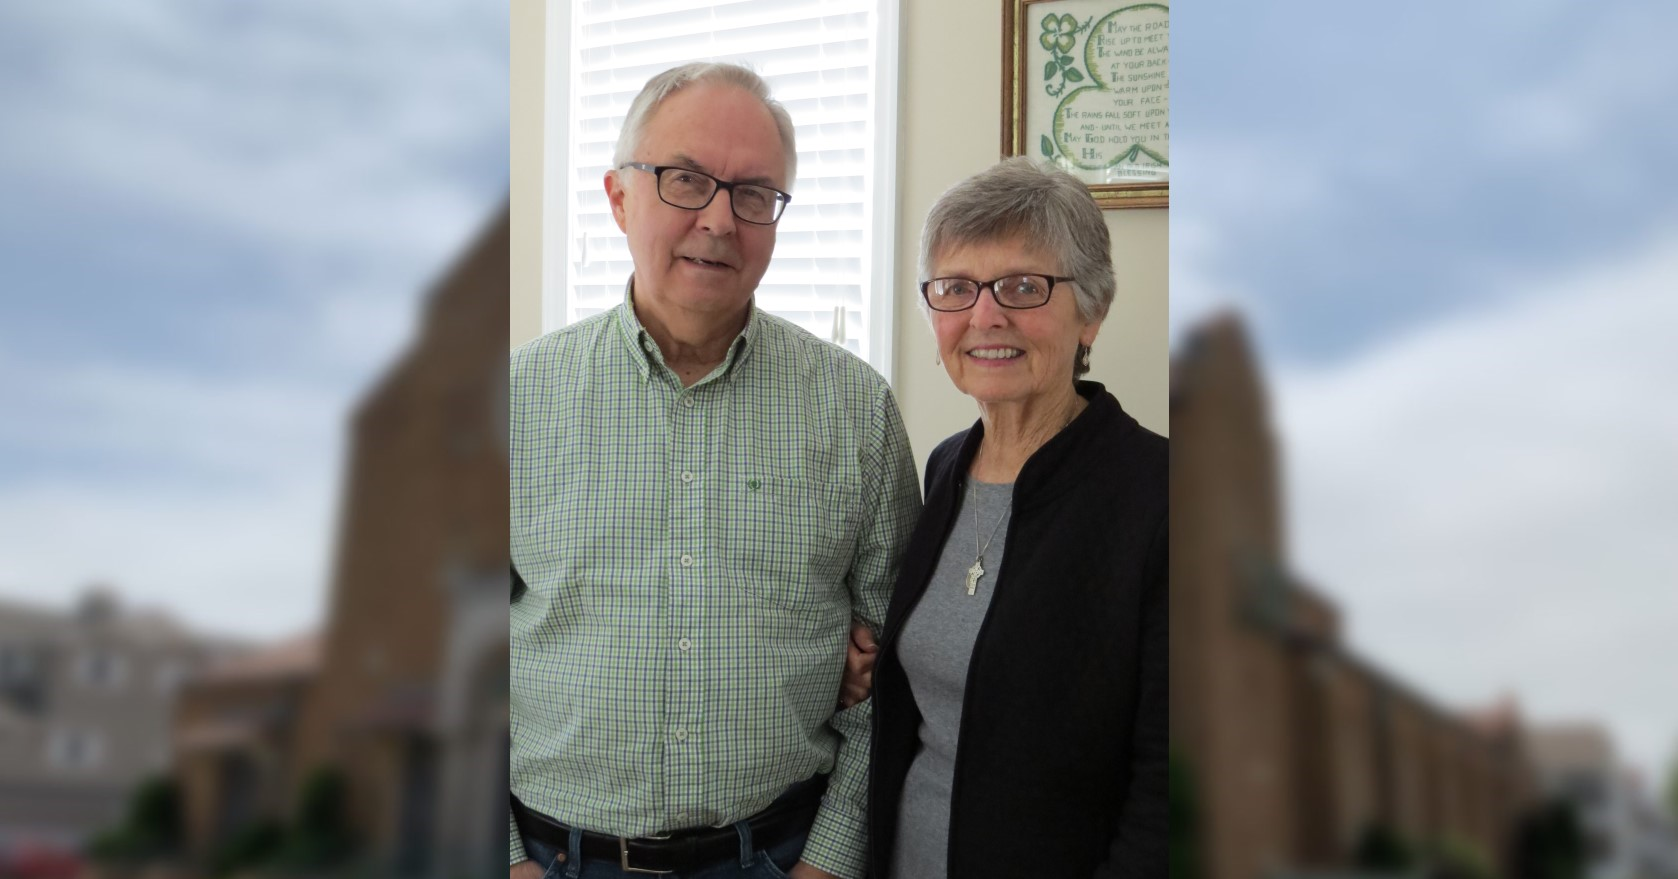 Know Your Fellow Parishioner: Ginny & Joe Sosnowsky